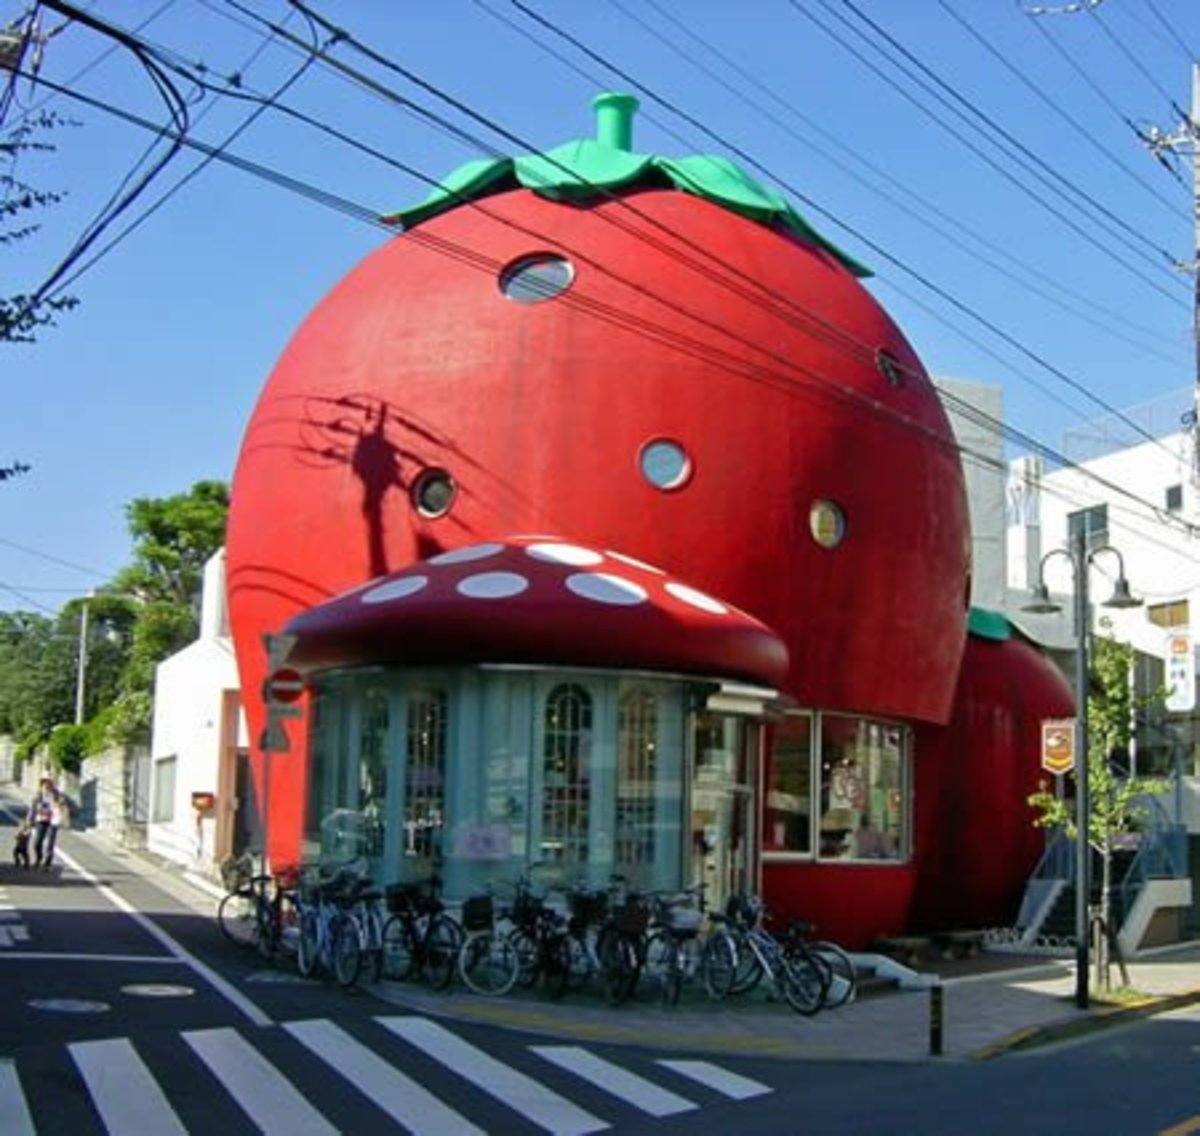 Remember Strawberry Shortcake in the 80's? The Strawberry house, in Tokyo (Japan).